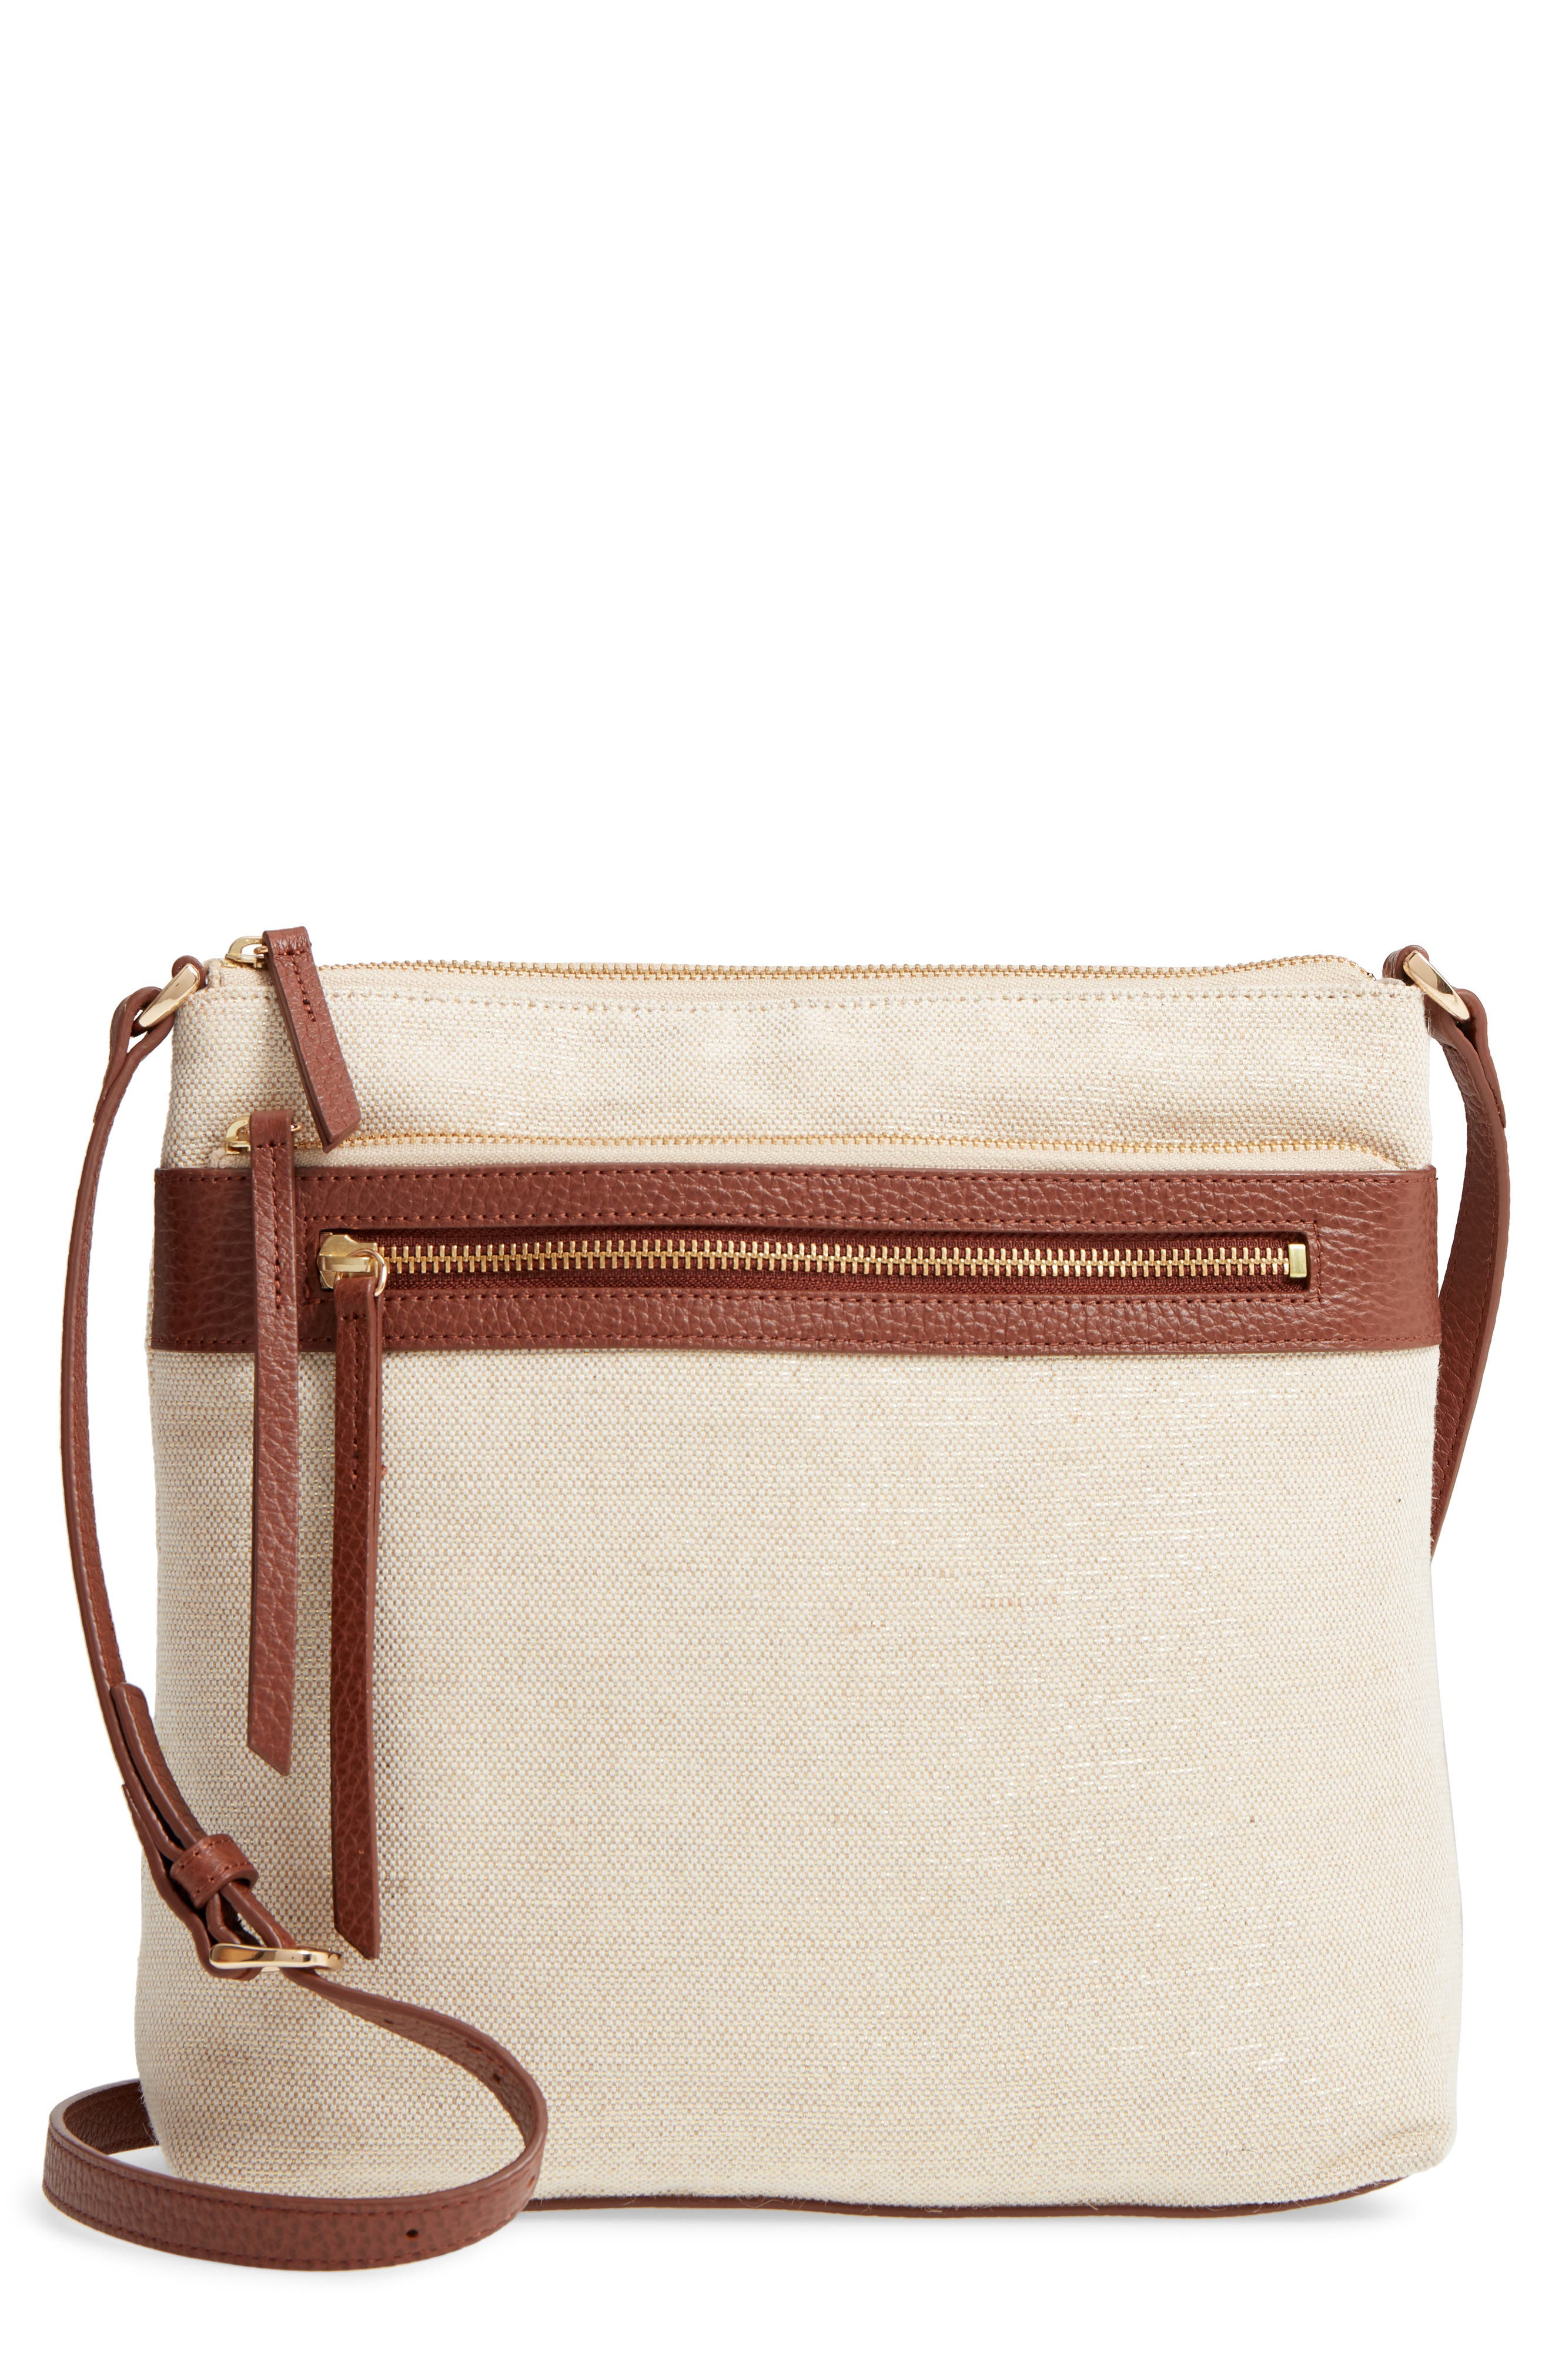 Kaison Linen & Leather Crossbody Bag,                             Main thumbnail 1, color,                             Natural/ Gold